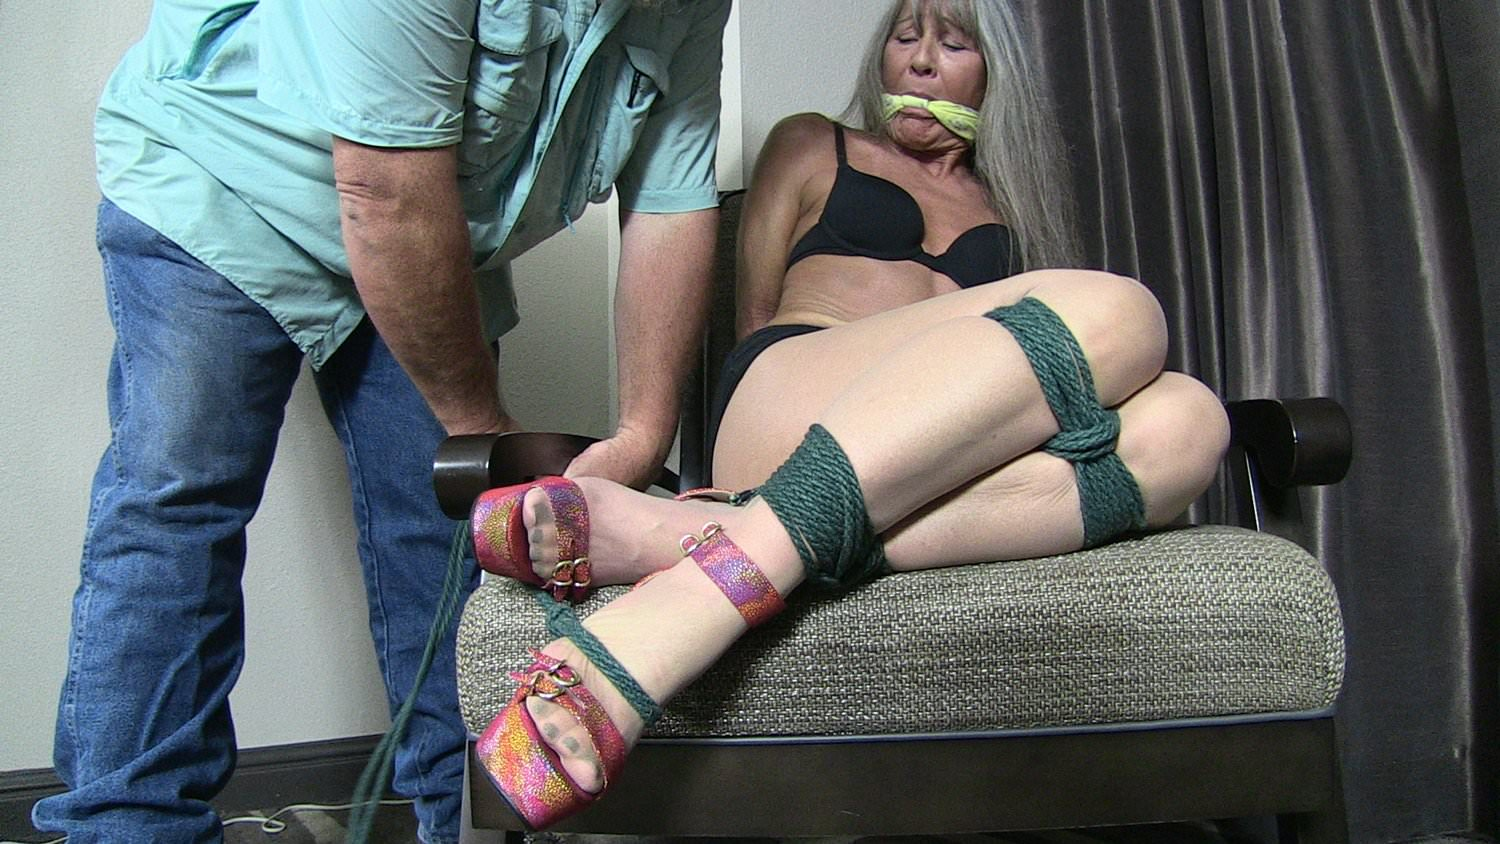 speaking, opinion, masseuse fetish hottie nailed by client was and with me